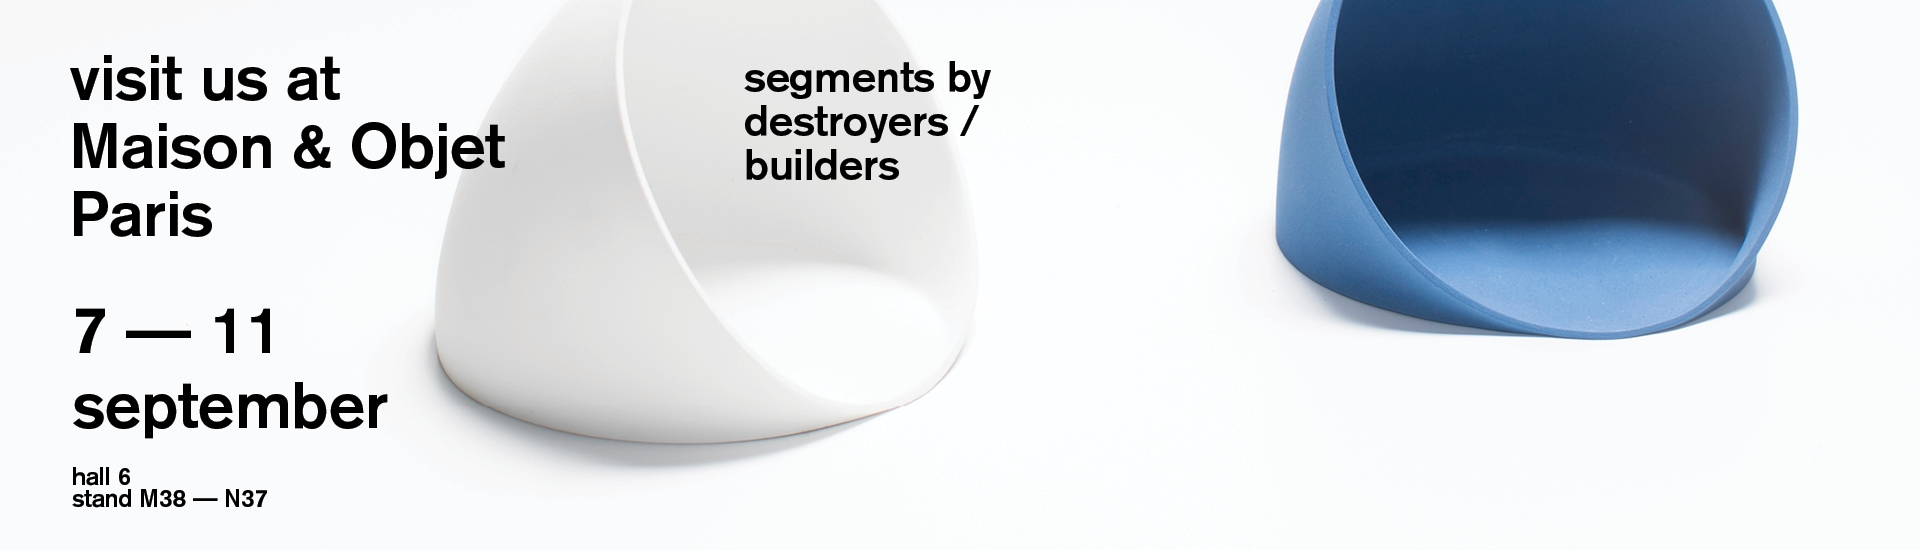 segments by Destroyers/Builders at M&O sept 2018